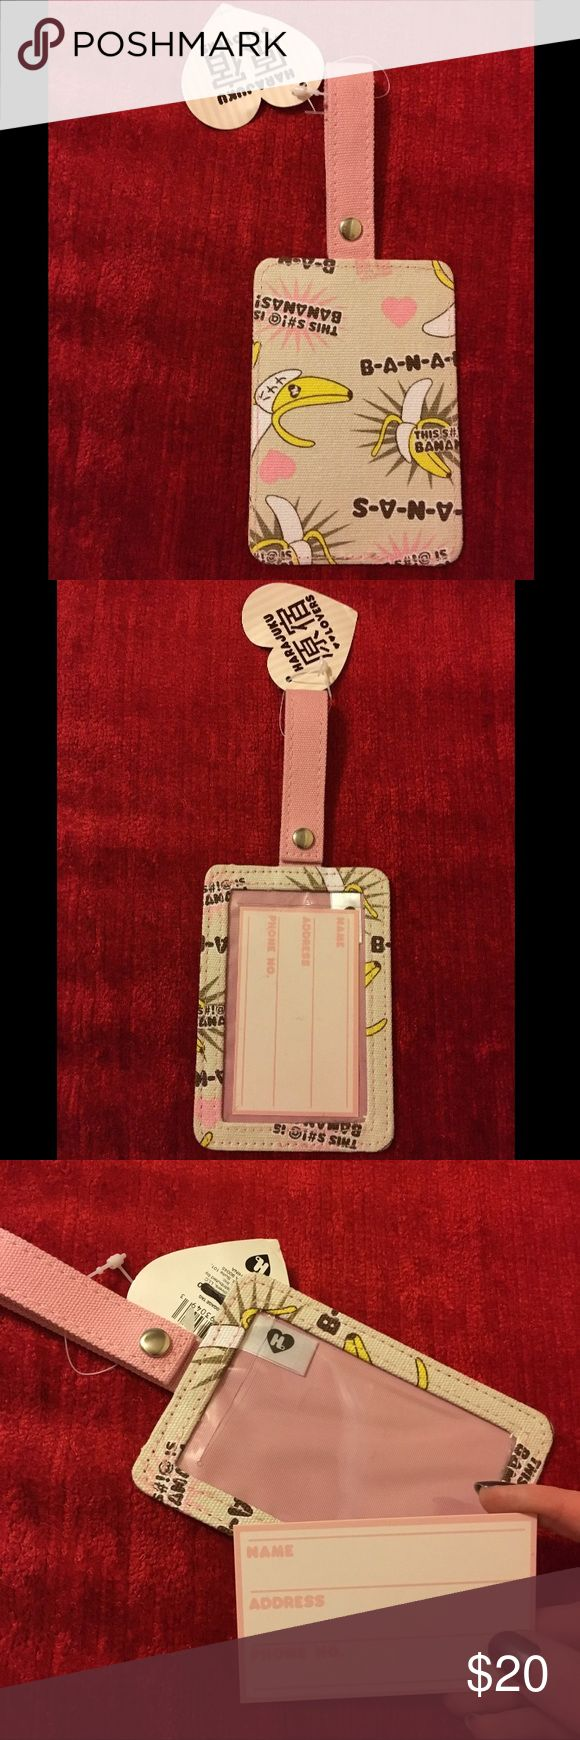 Harajuku Lovers luggage ID identification tag Designed by Gwen Stefani - featuring Hollaback Girl lyrics! So cute! Brand new with tags. Bundle discount available. Harajuku Lovers Accessories